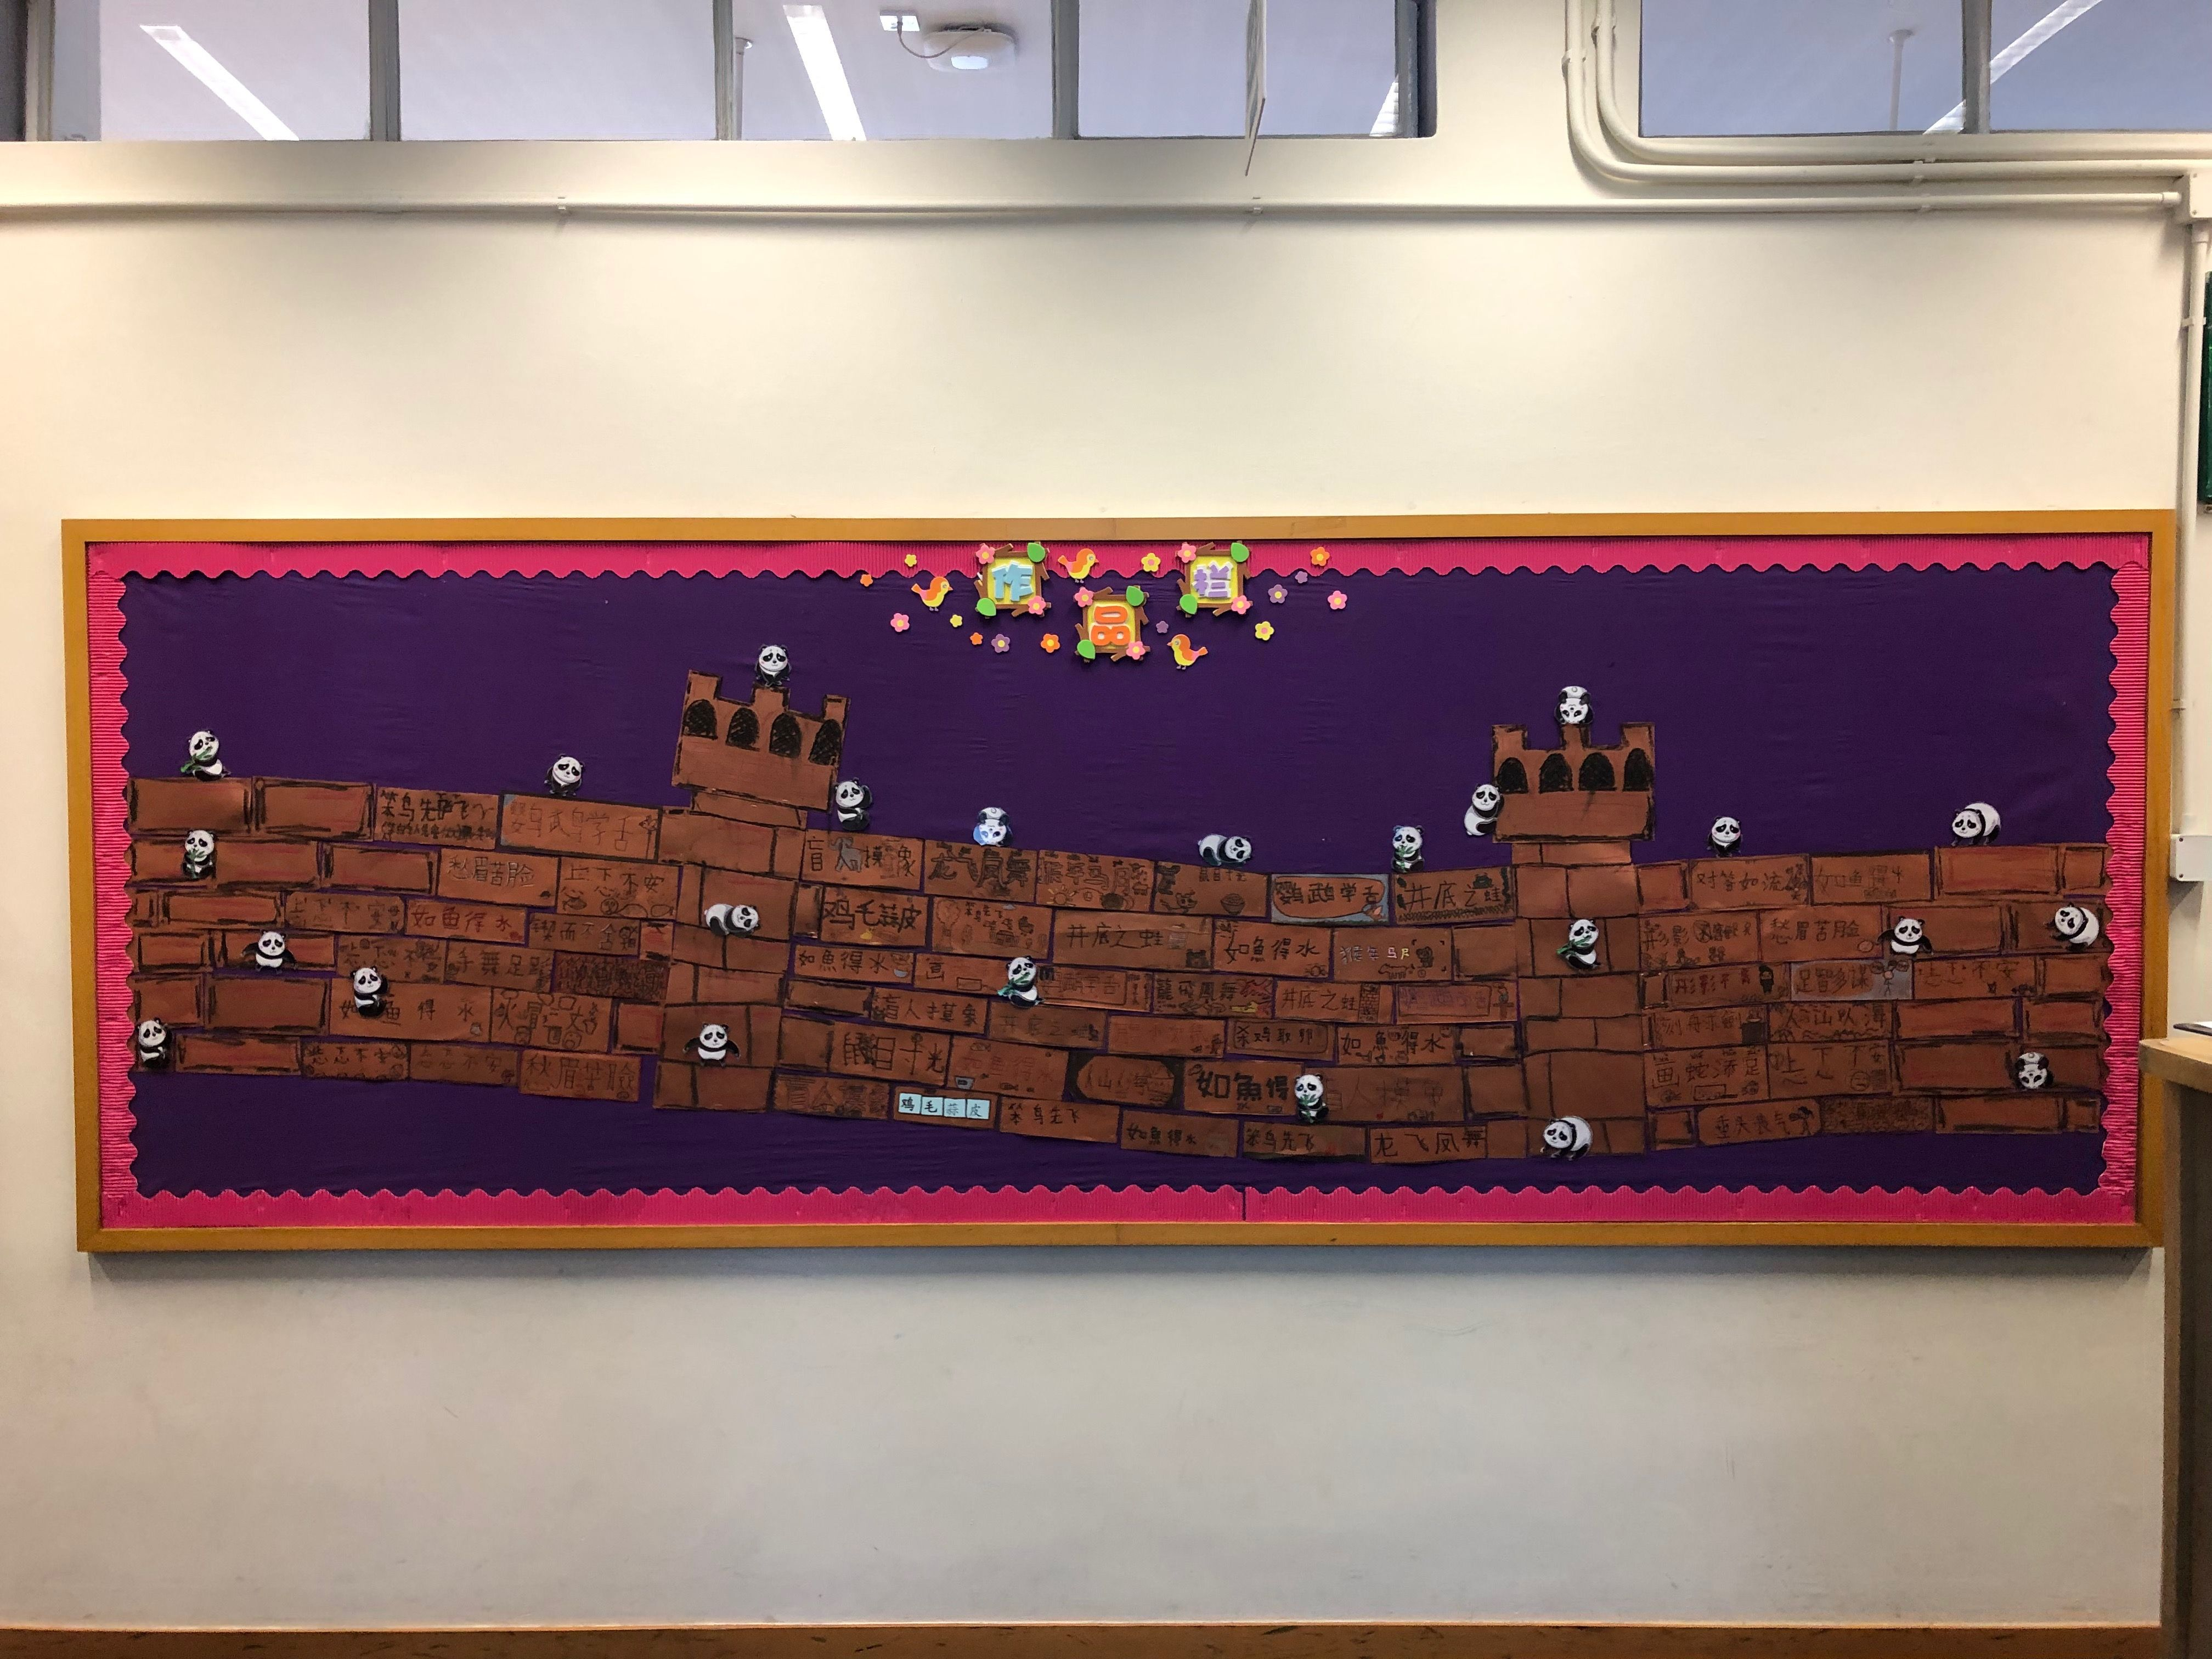 Classroom display ideas - Great Wall of China with pandas ...